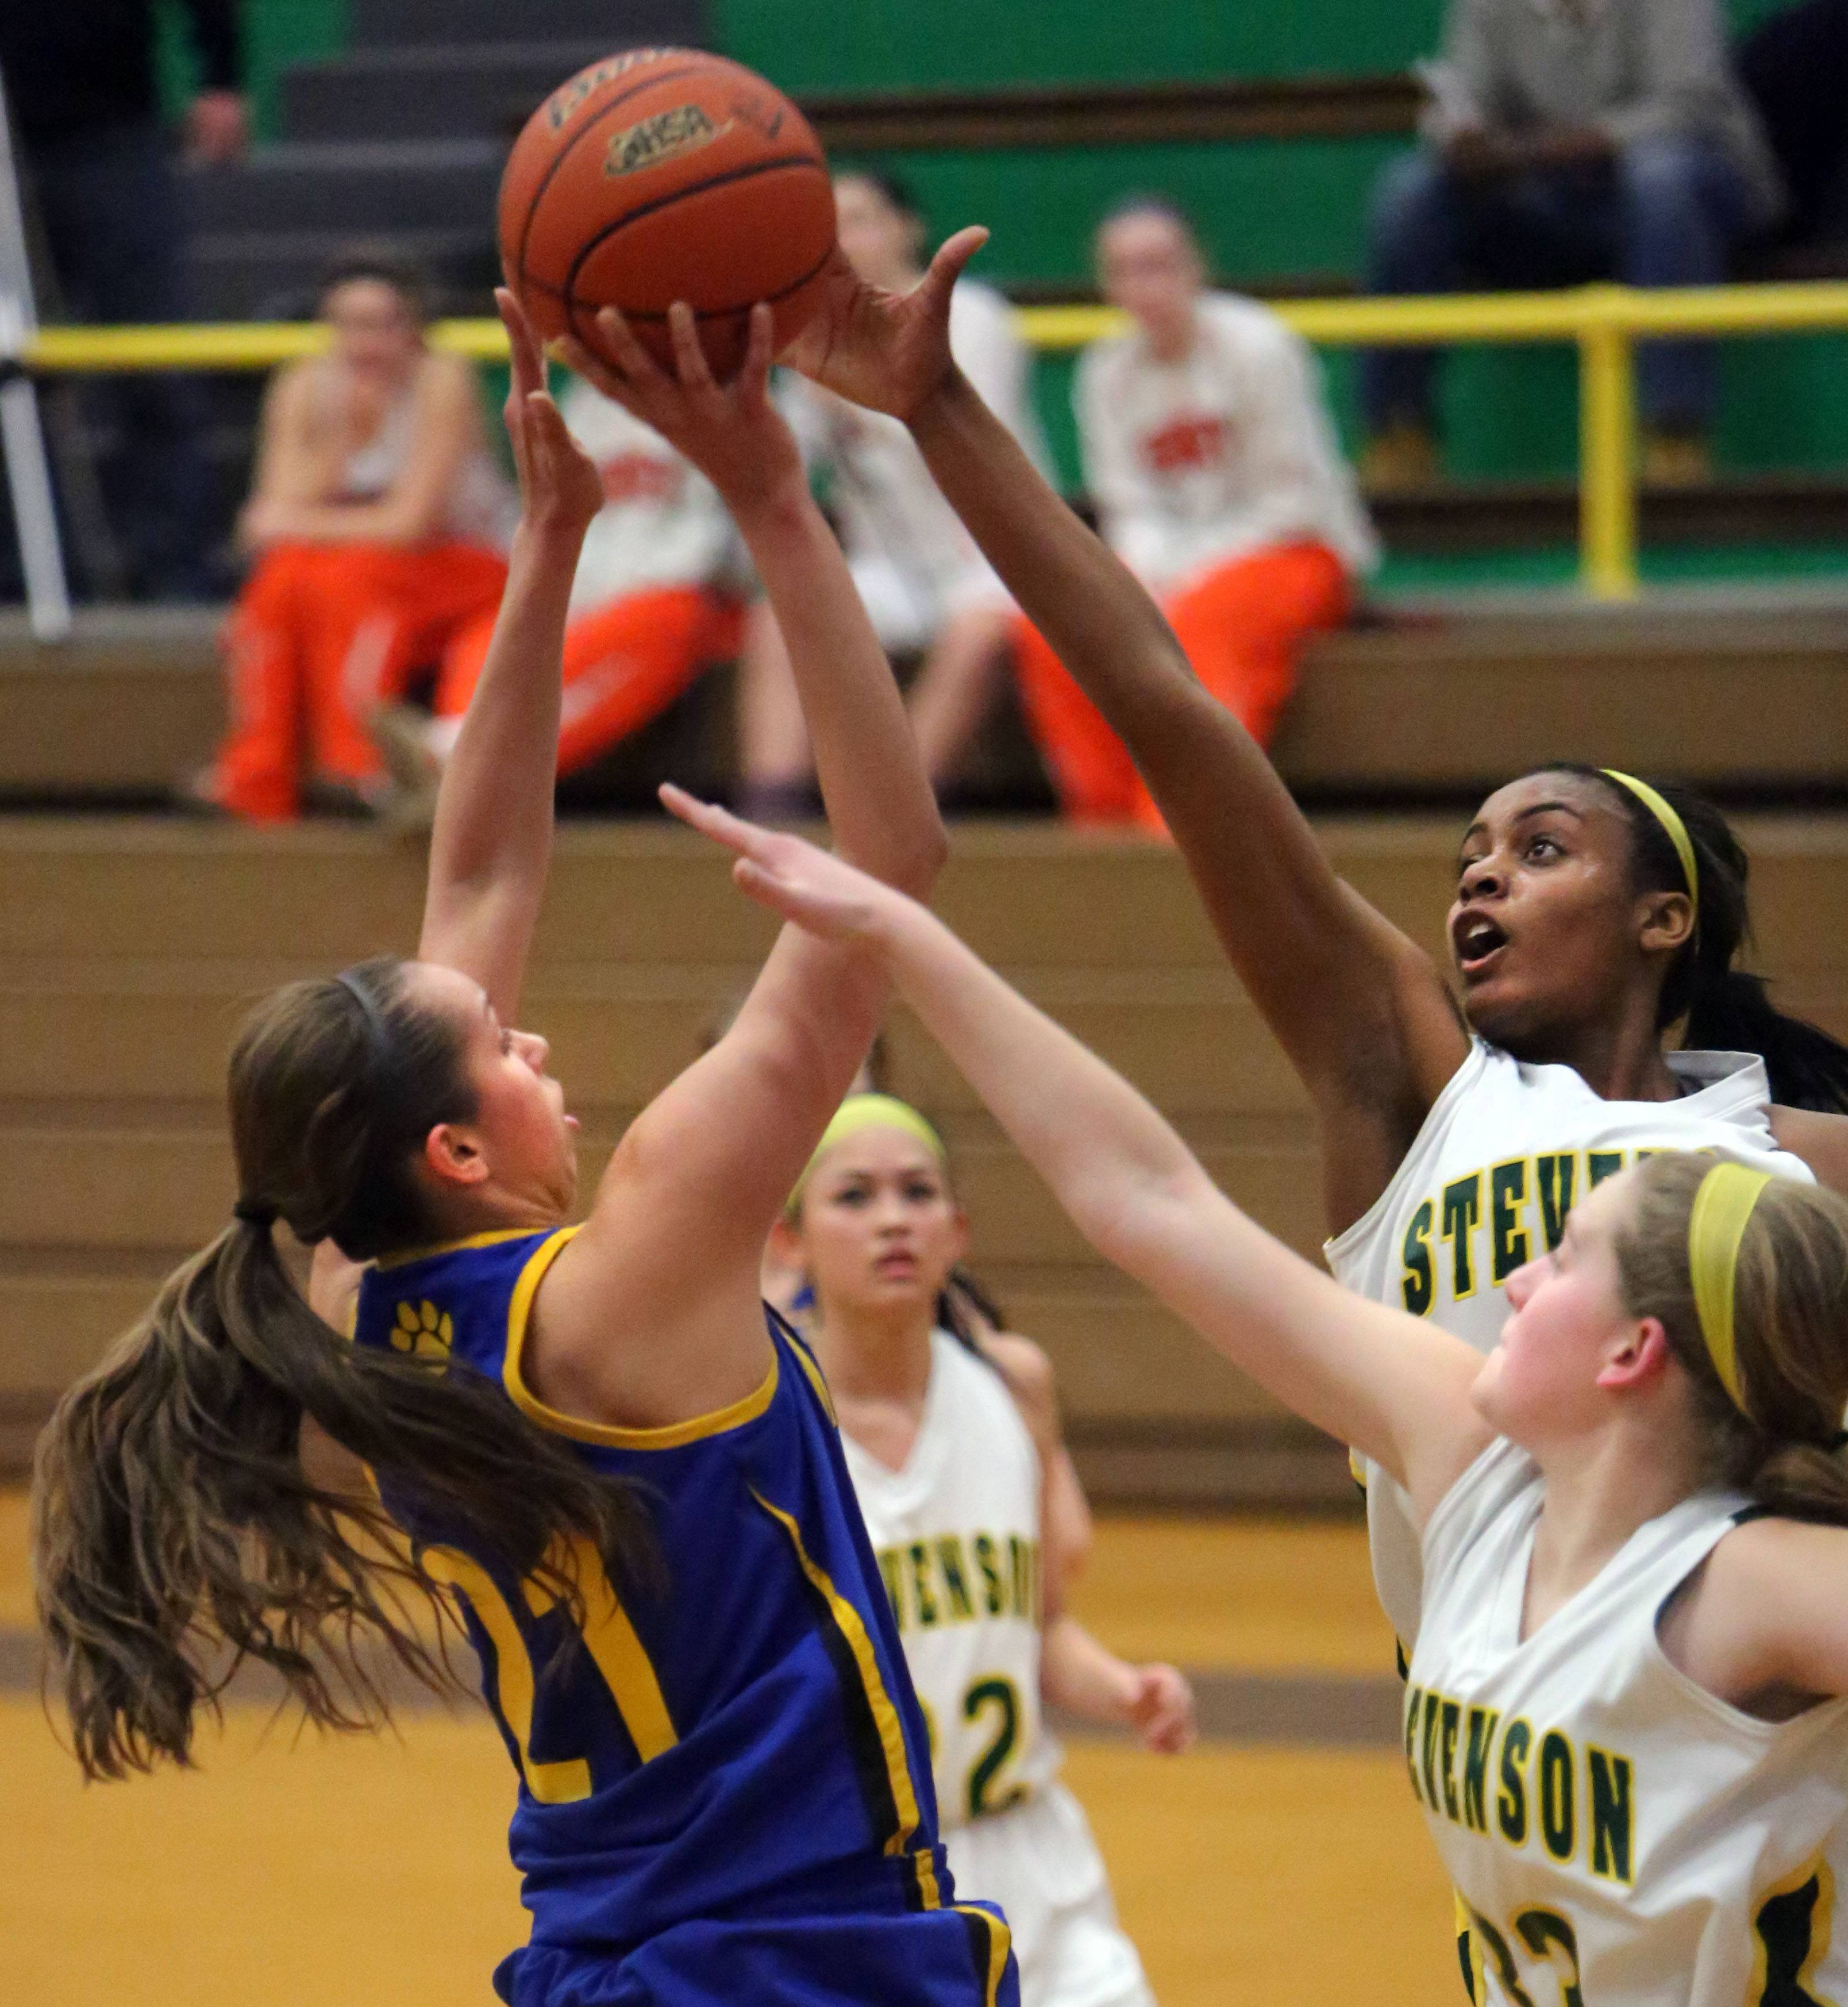 Wheeling's Deanna Kuzmanic, left, tries to shoot over Stevenson's Taylor Buford during Class 4A regional semifinal play at Waukegan on Wednesday.